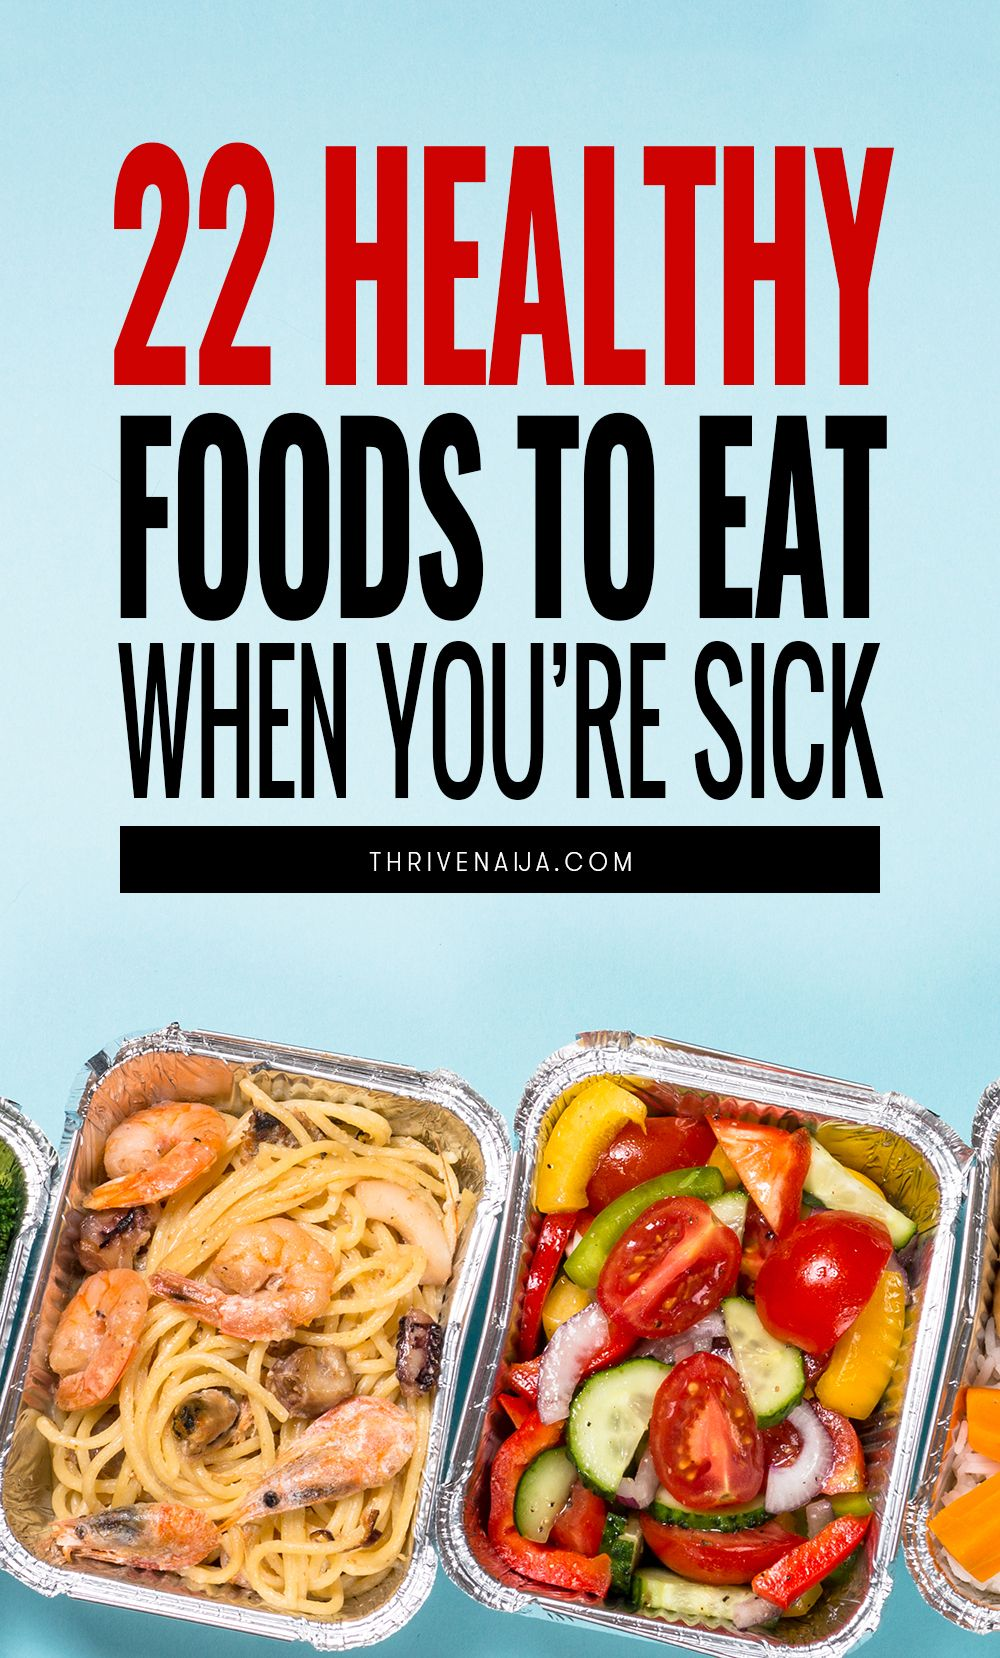 22 healthy foods to eat when sick eat when sick food